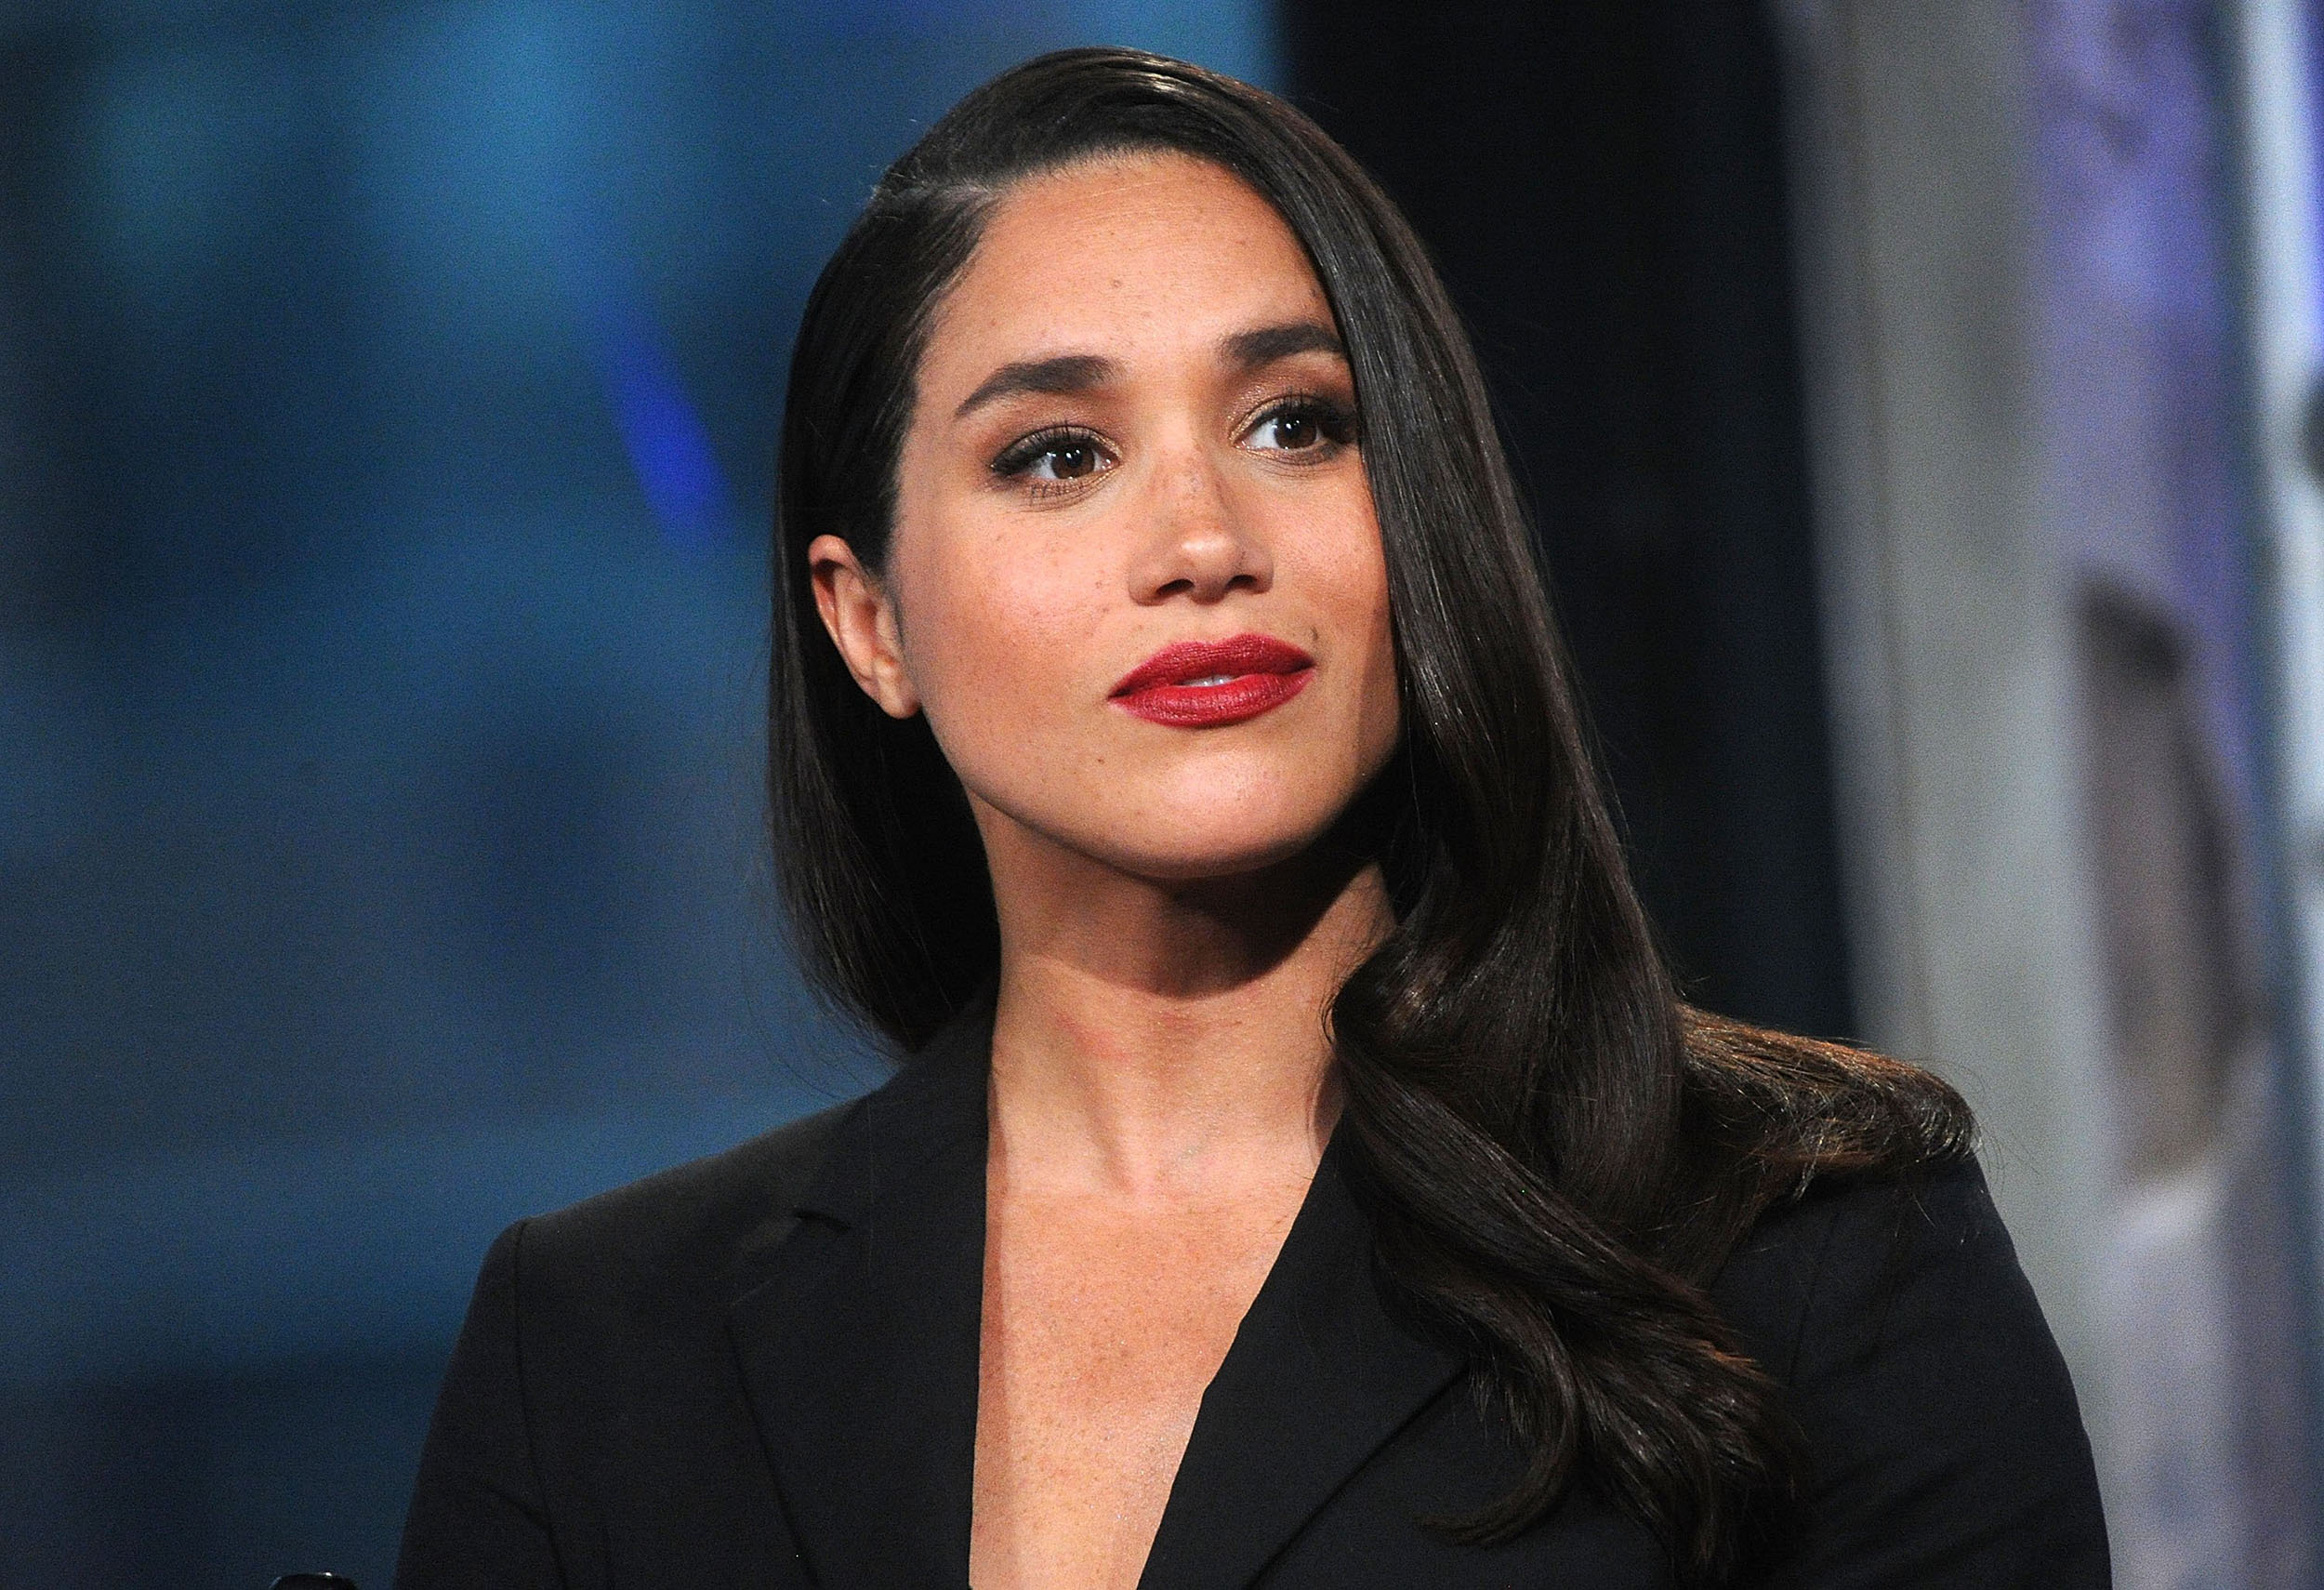 Meghan Markle, Prince Harry relationship exposes 'quiet' racism